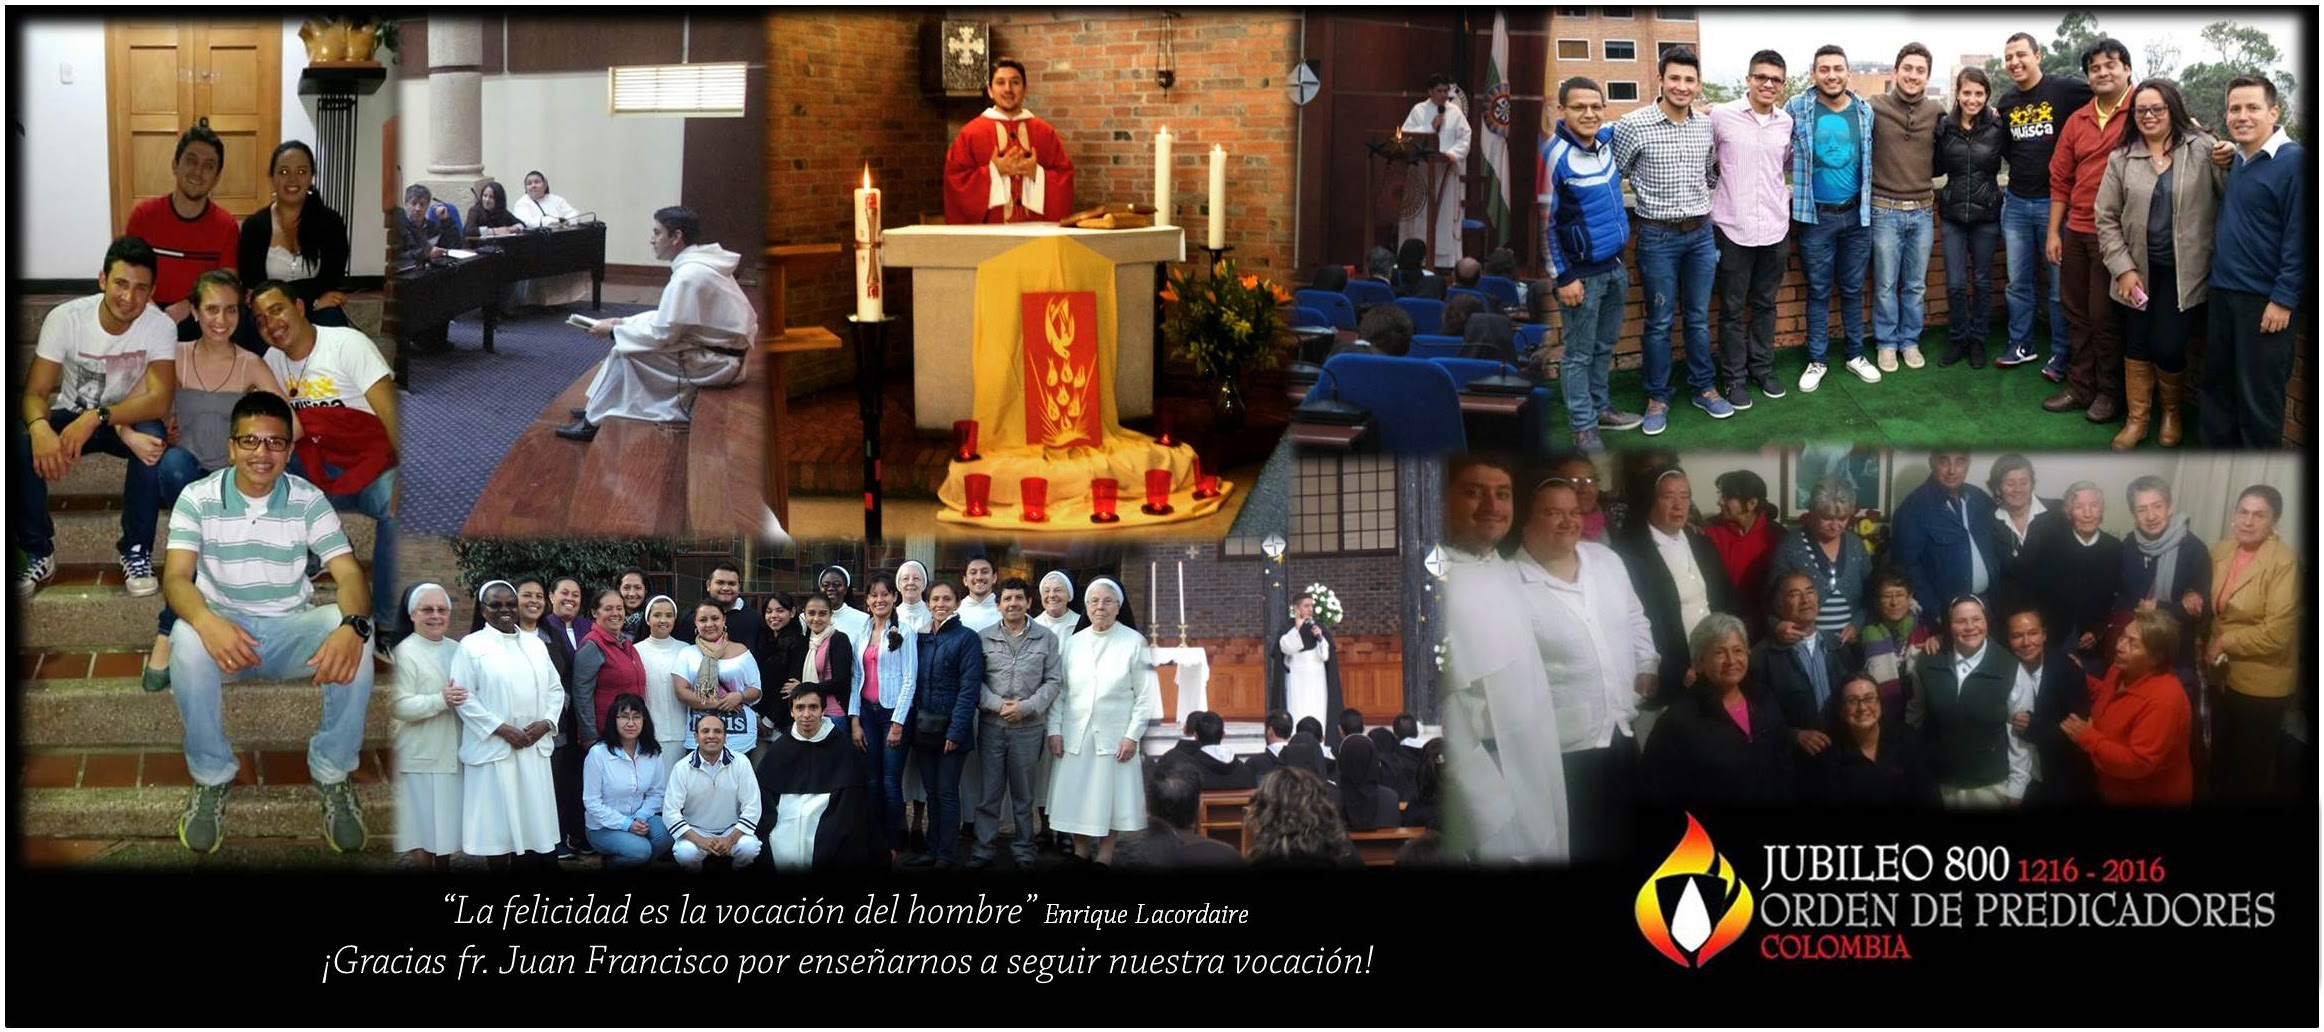 https://fadomcolombia.files.wordpress.com/2015/09/collage-fr-juan-francisco-ii1.jpg